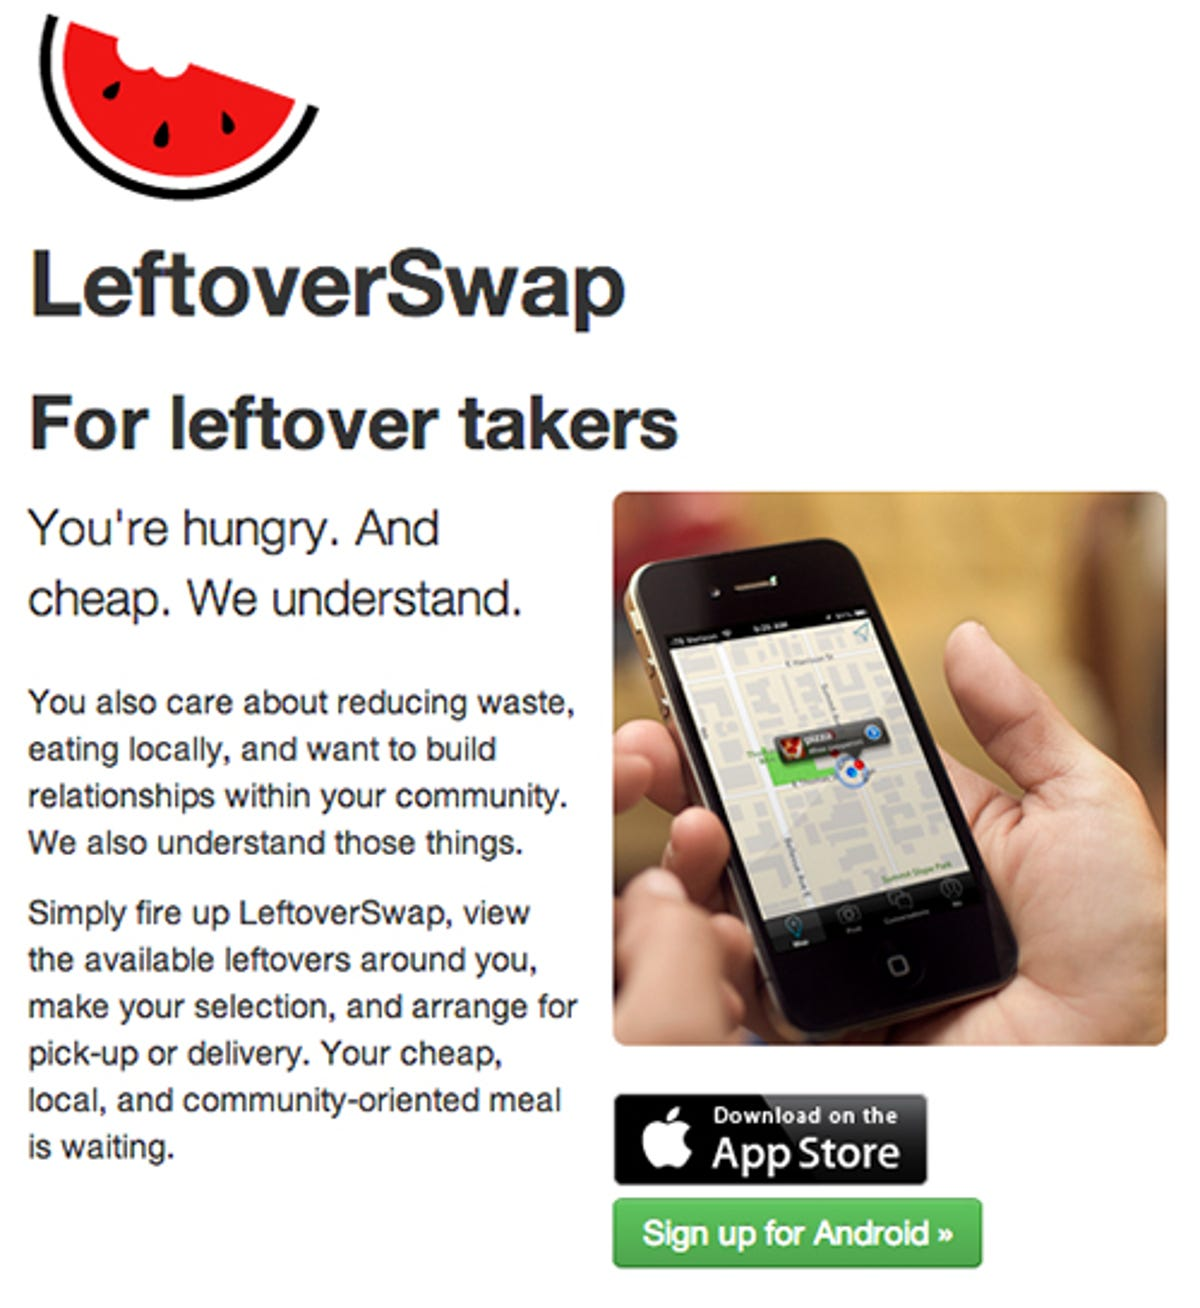 New app lets you share leftovers - Would you take leftovers